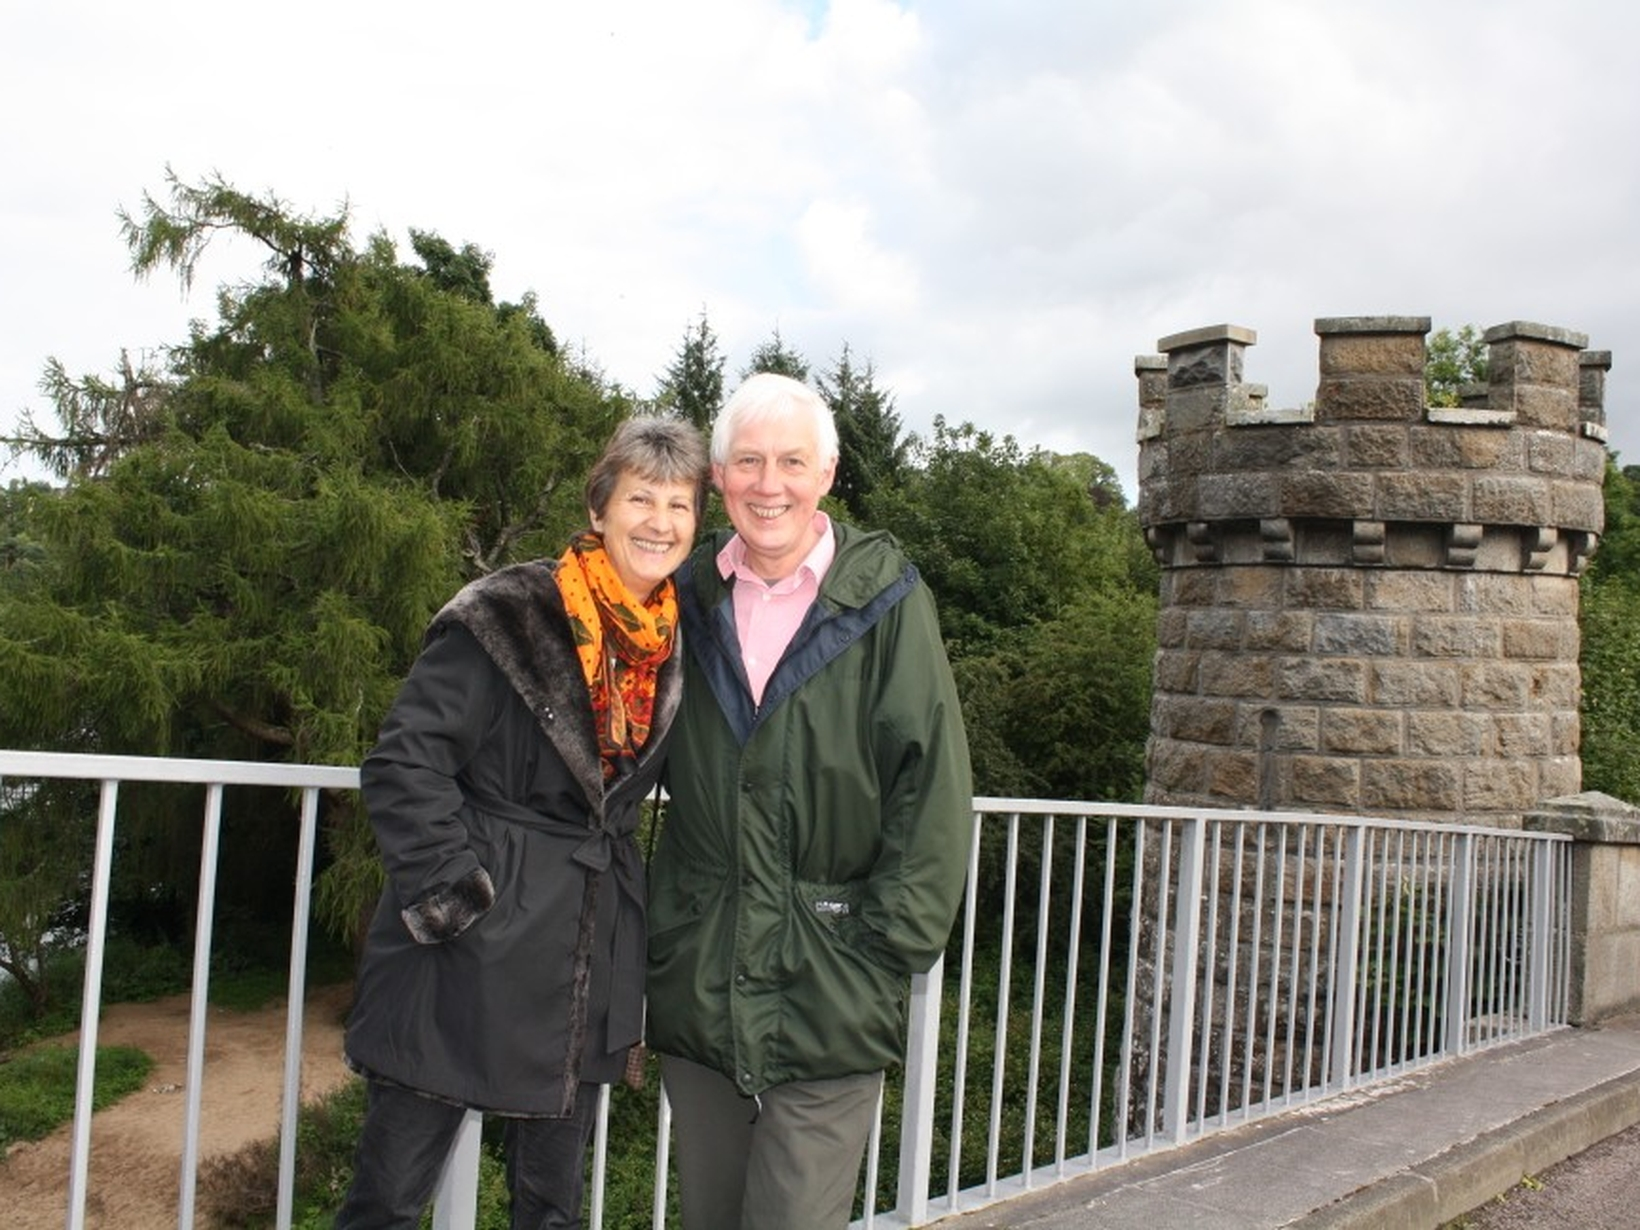 Donald & Jeannine from Keith, United Kingdom